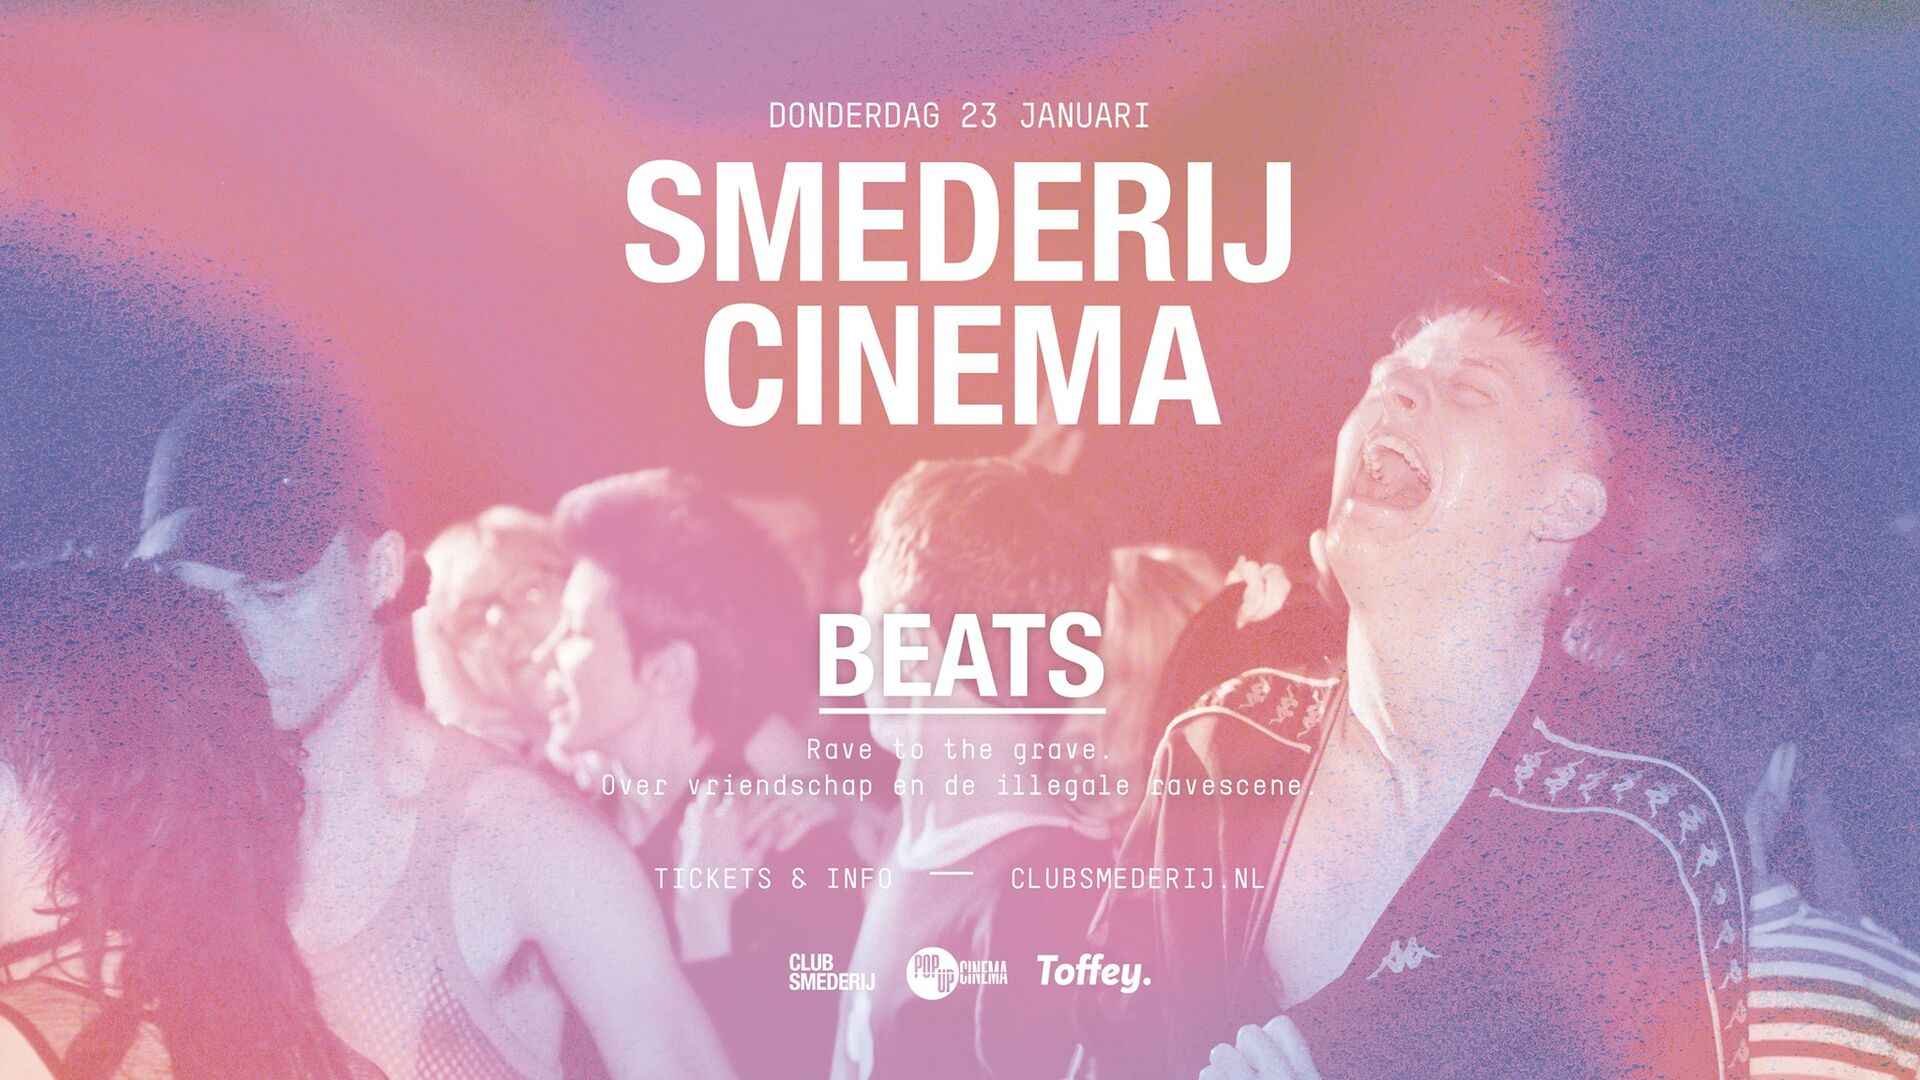 Smederij Cinema - BEATS